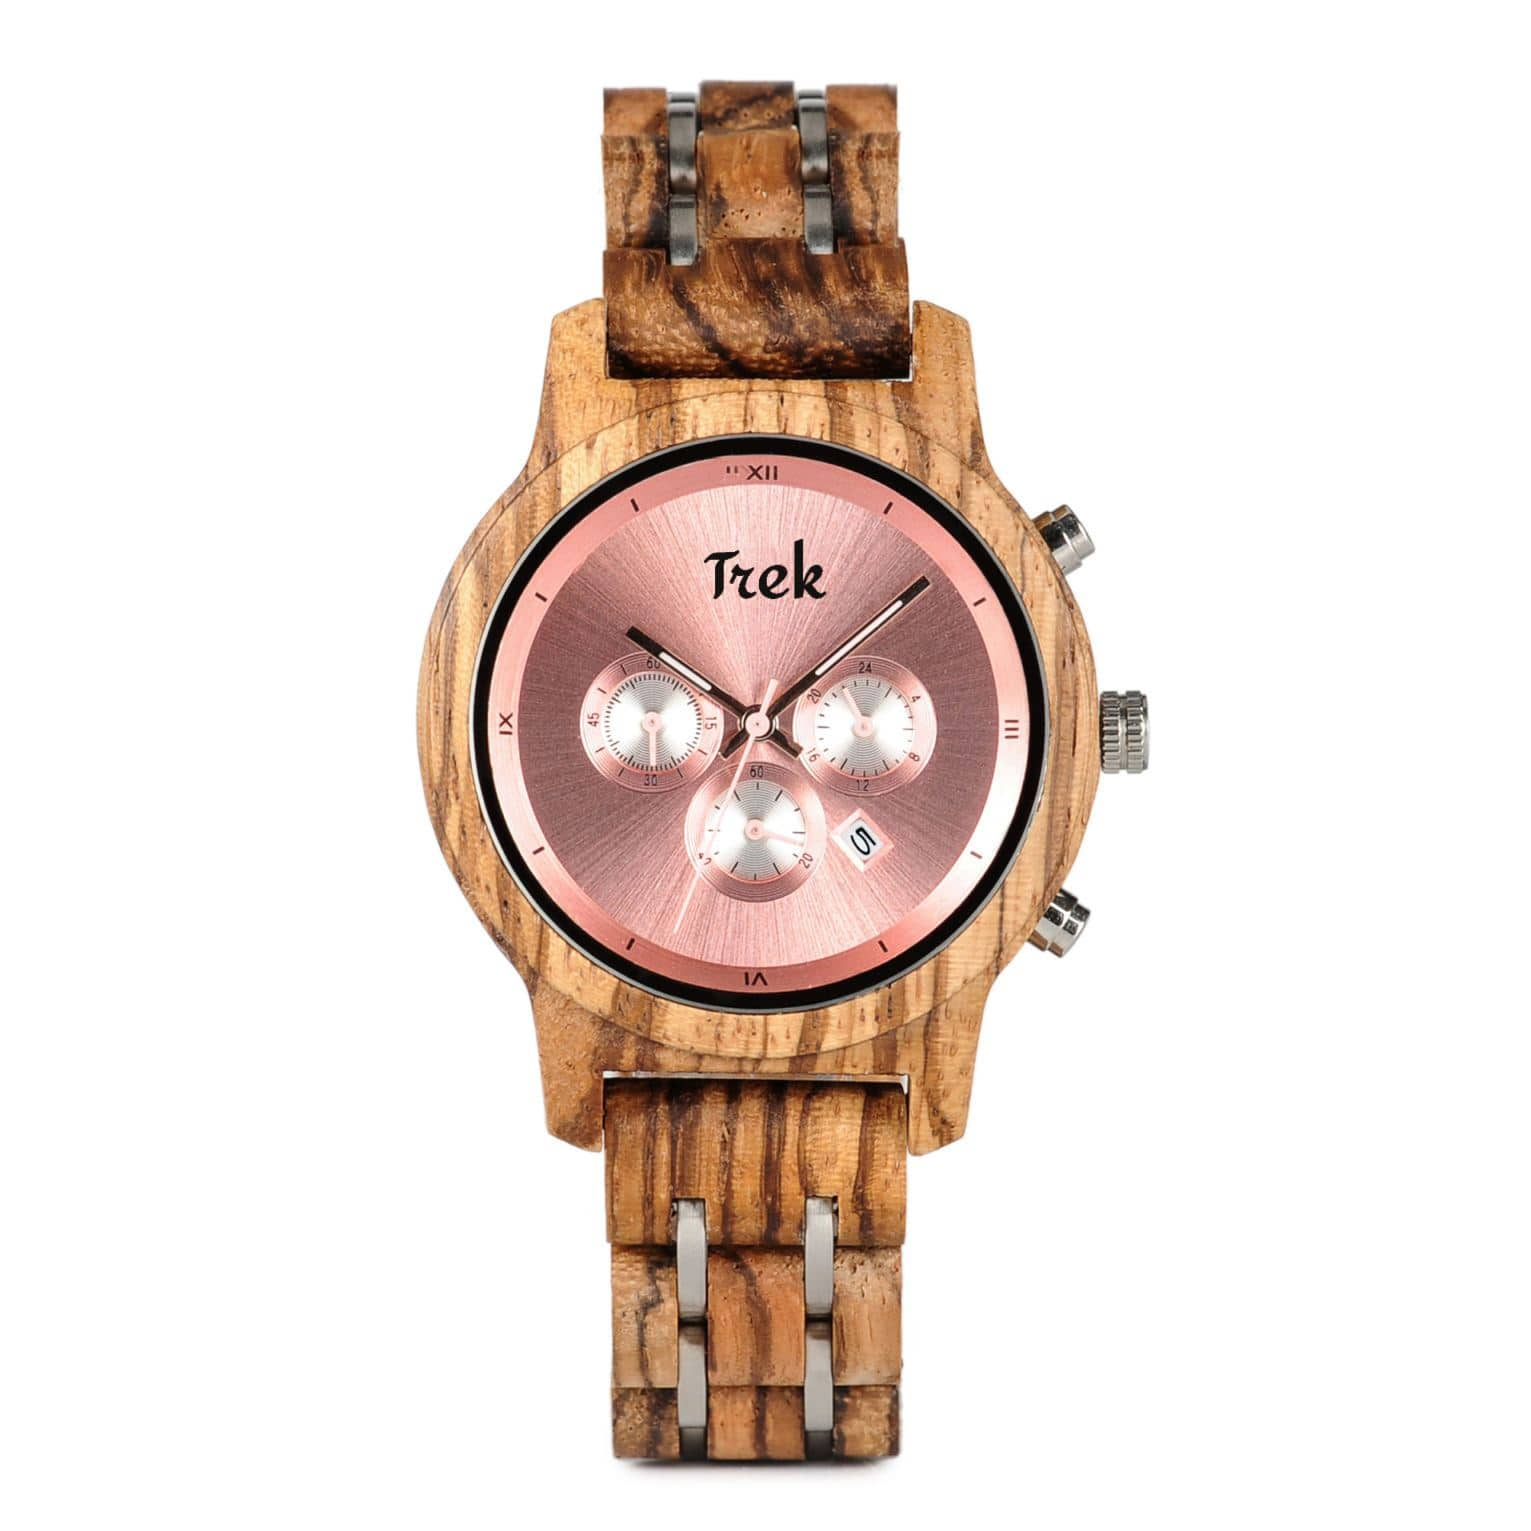 Edith Women's Luxury Chronograph Wood Watch (Rose Pink) - Trek Watches